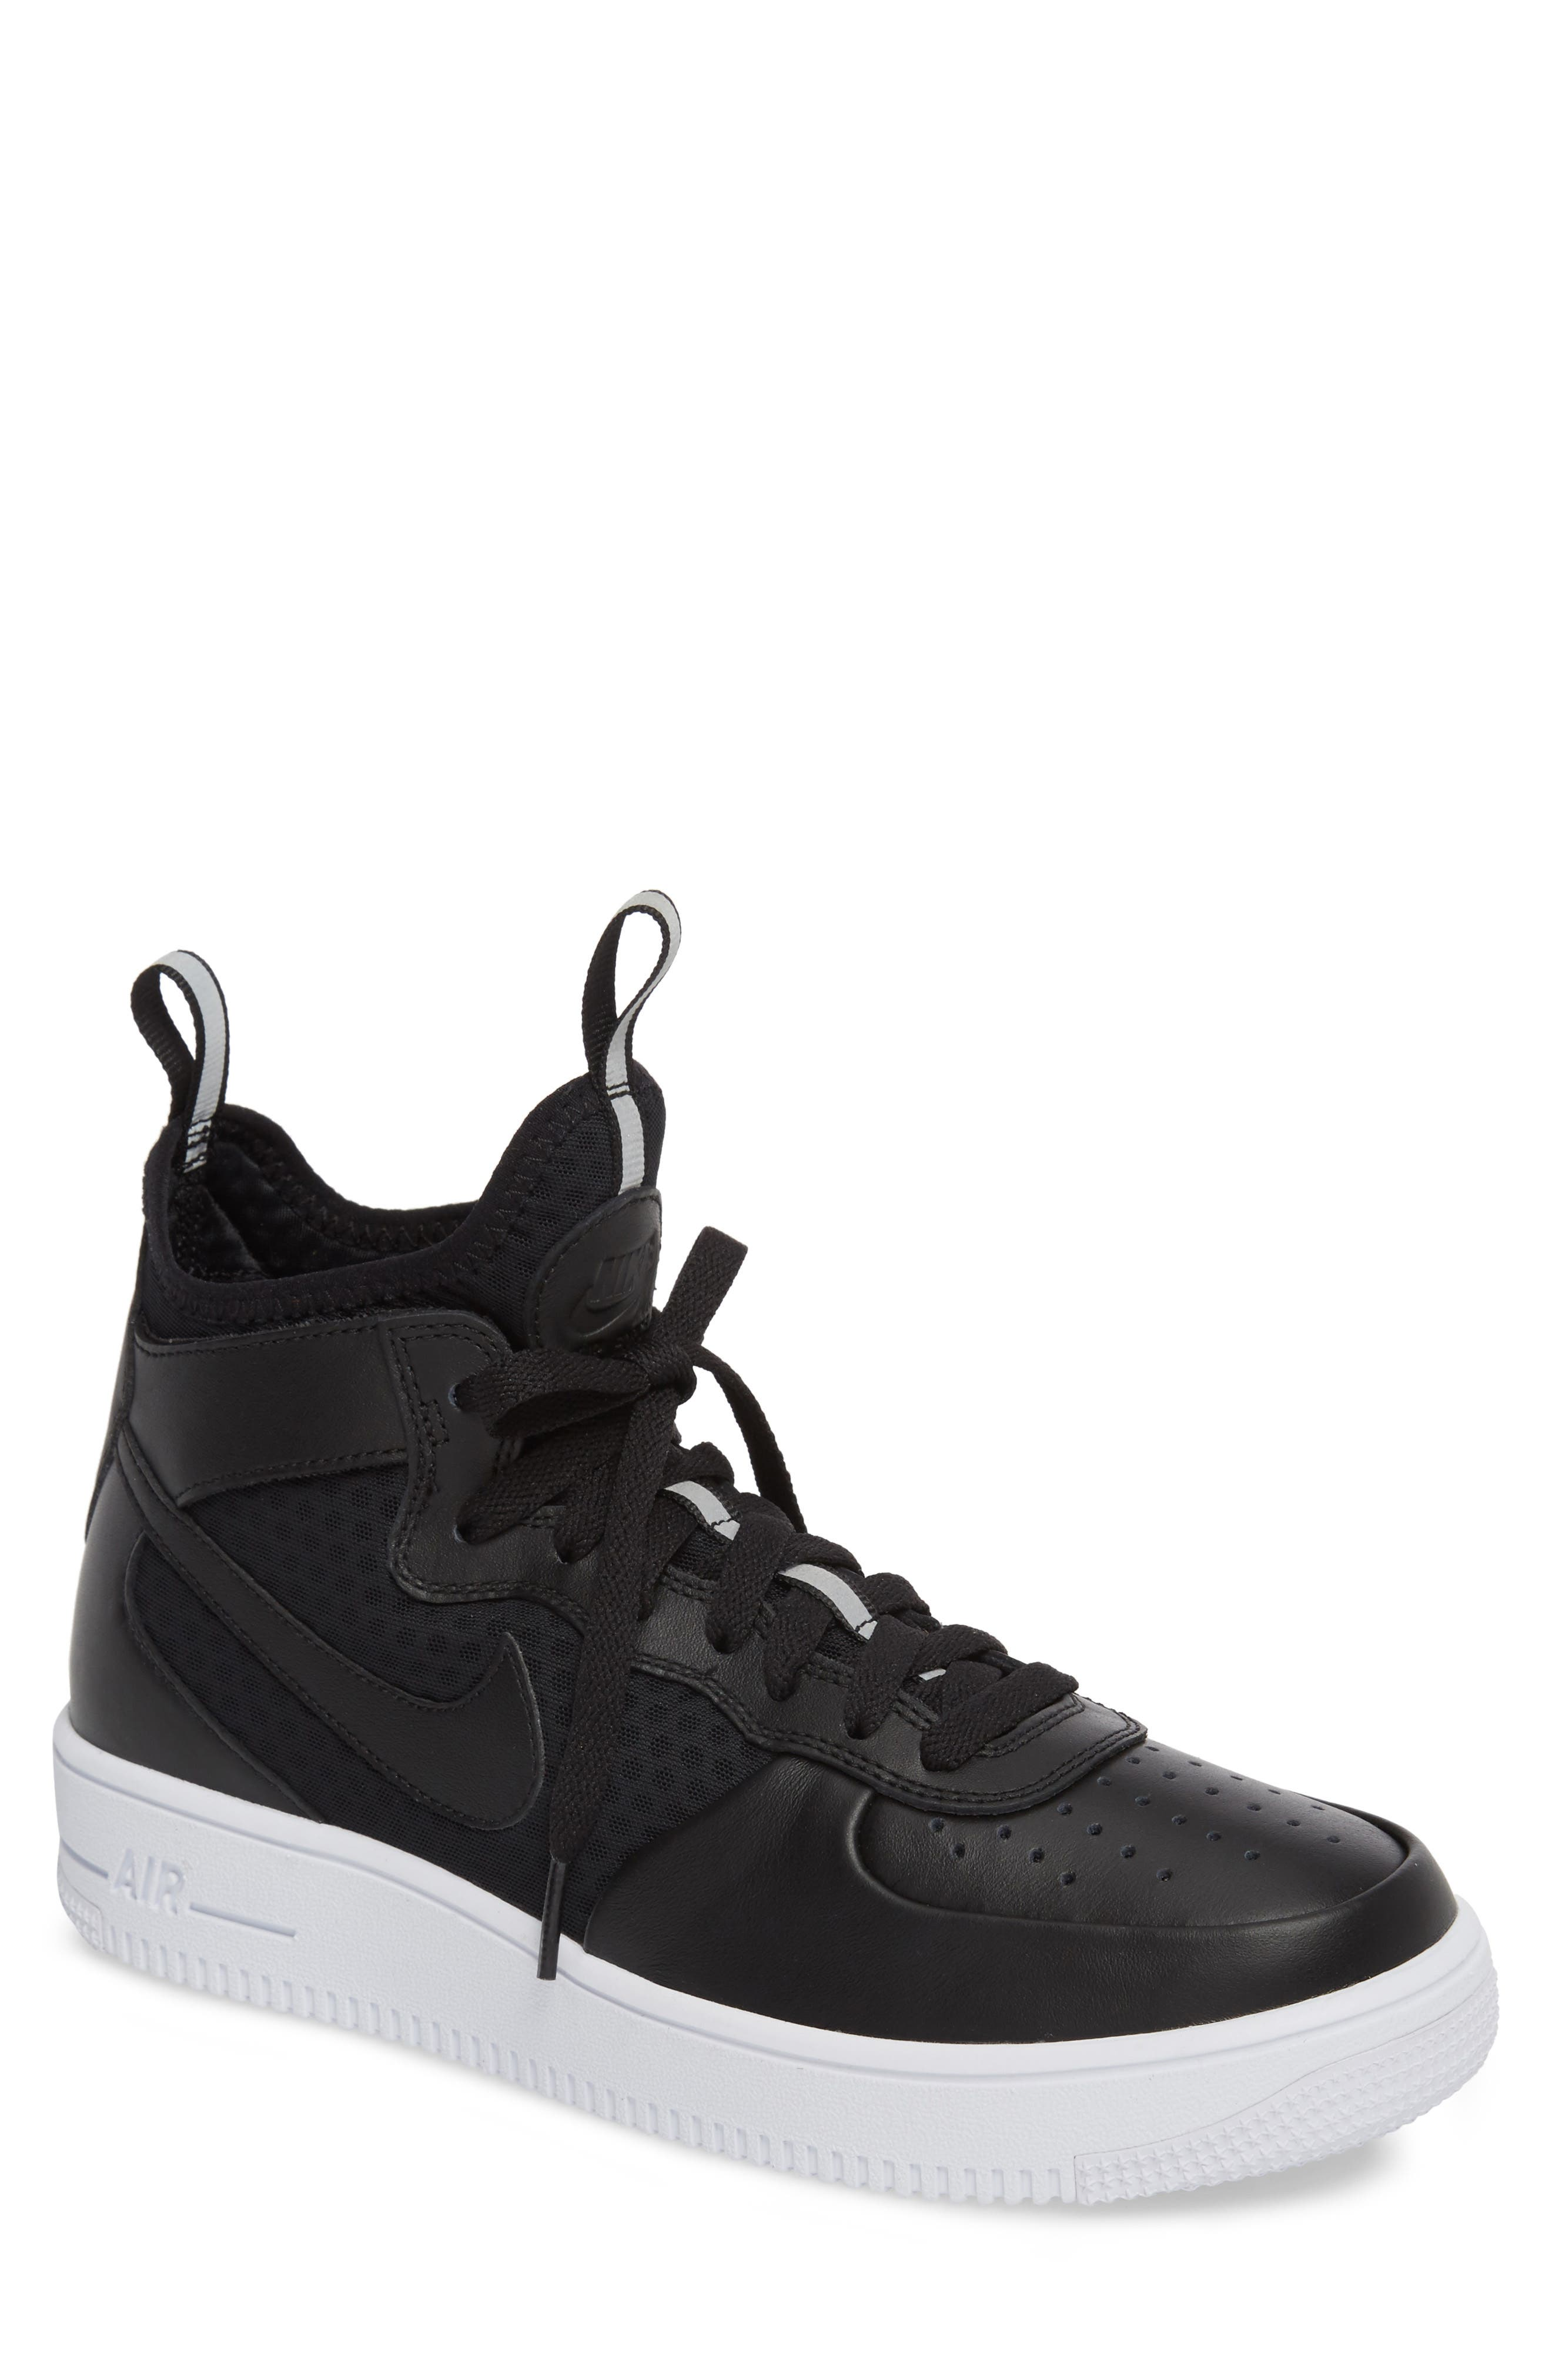 Air Force 1 Ultraforce Mid Sneaker,                         Main,                         color, 001